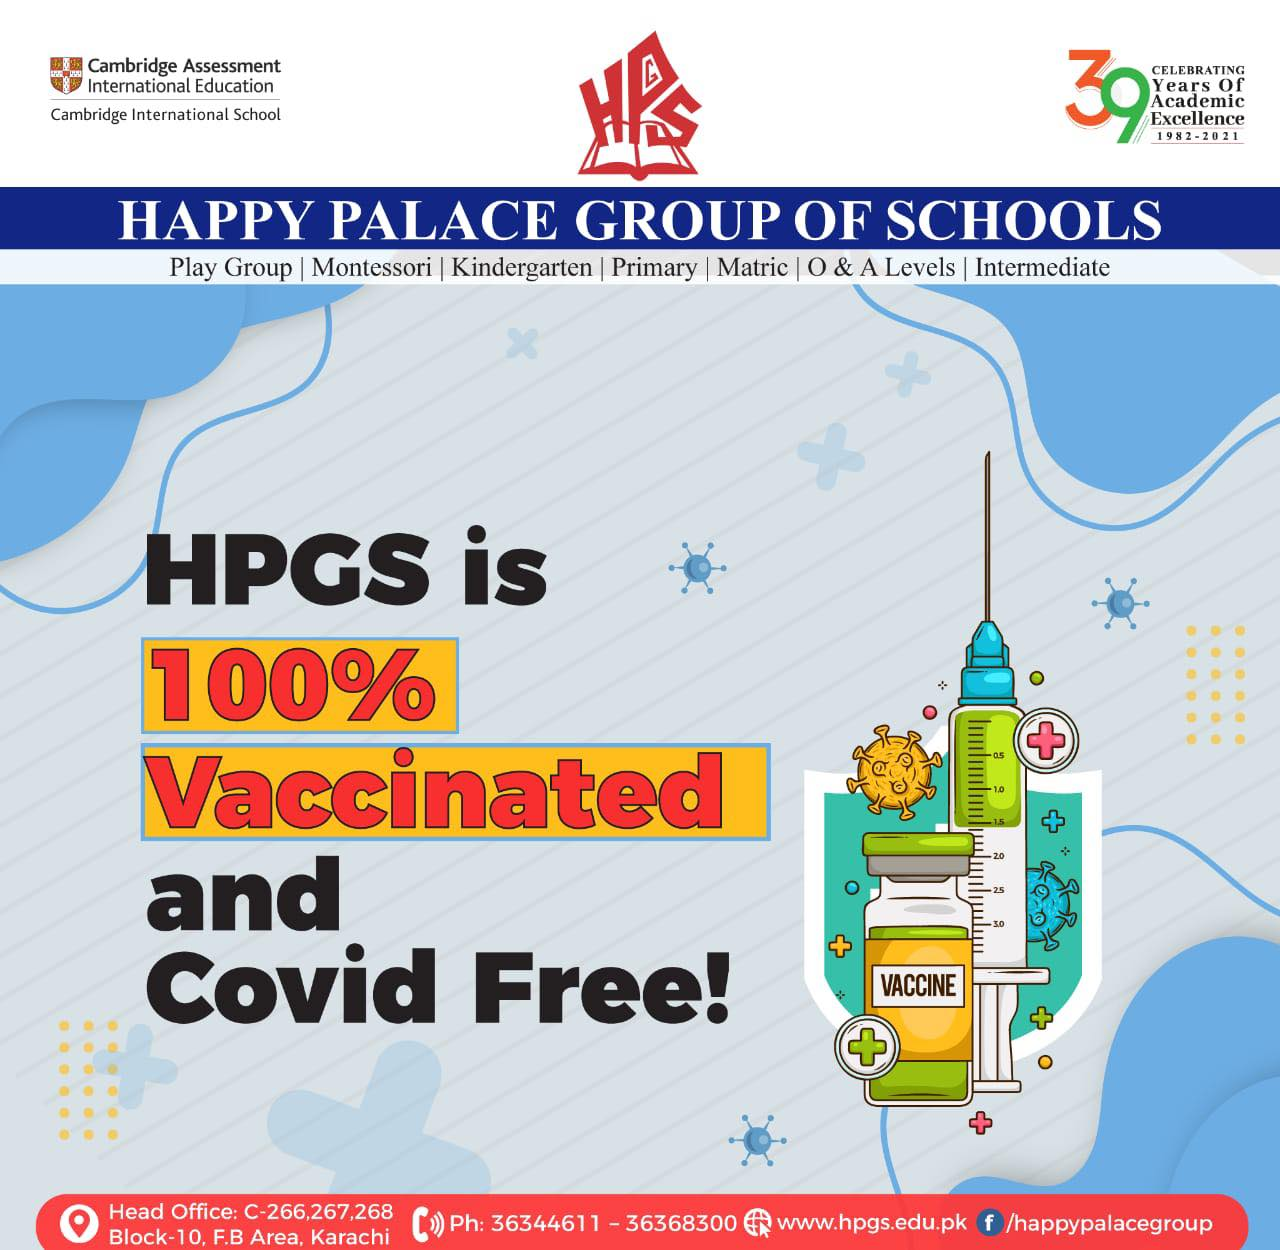 Our Board of Directors, Principals, Teaching and Ancillary staff members have all been vaccinated to ensure a safe return of students back to school!